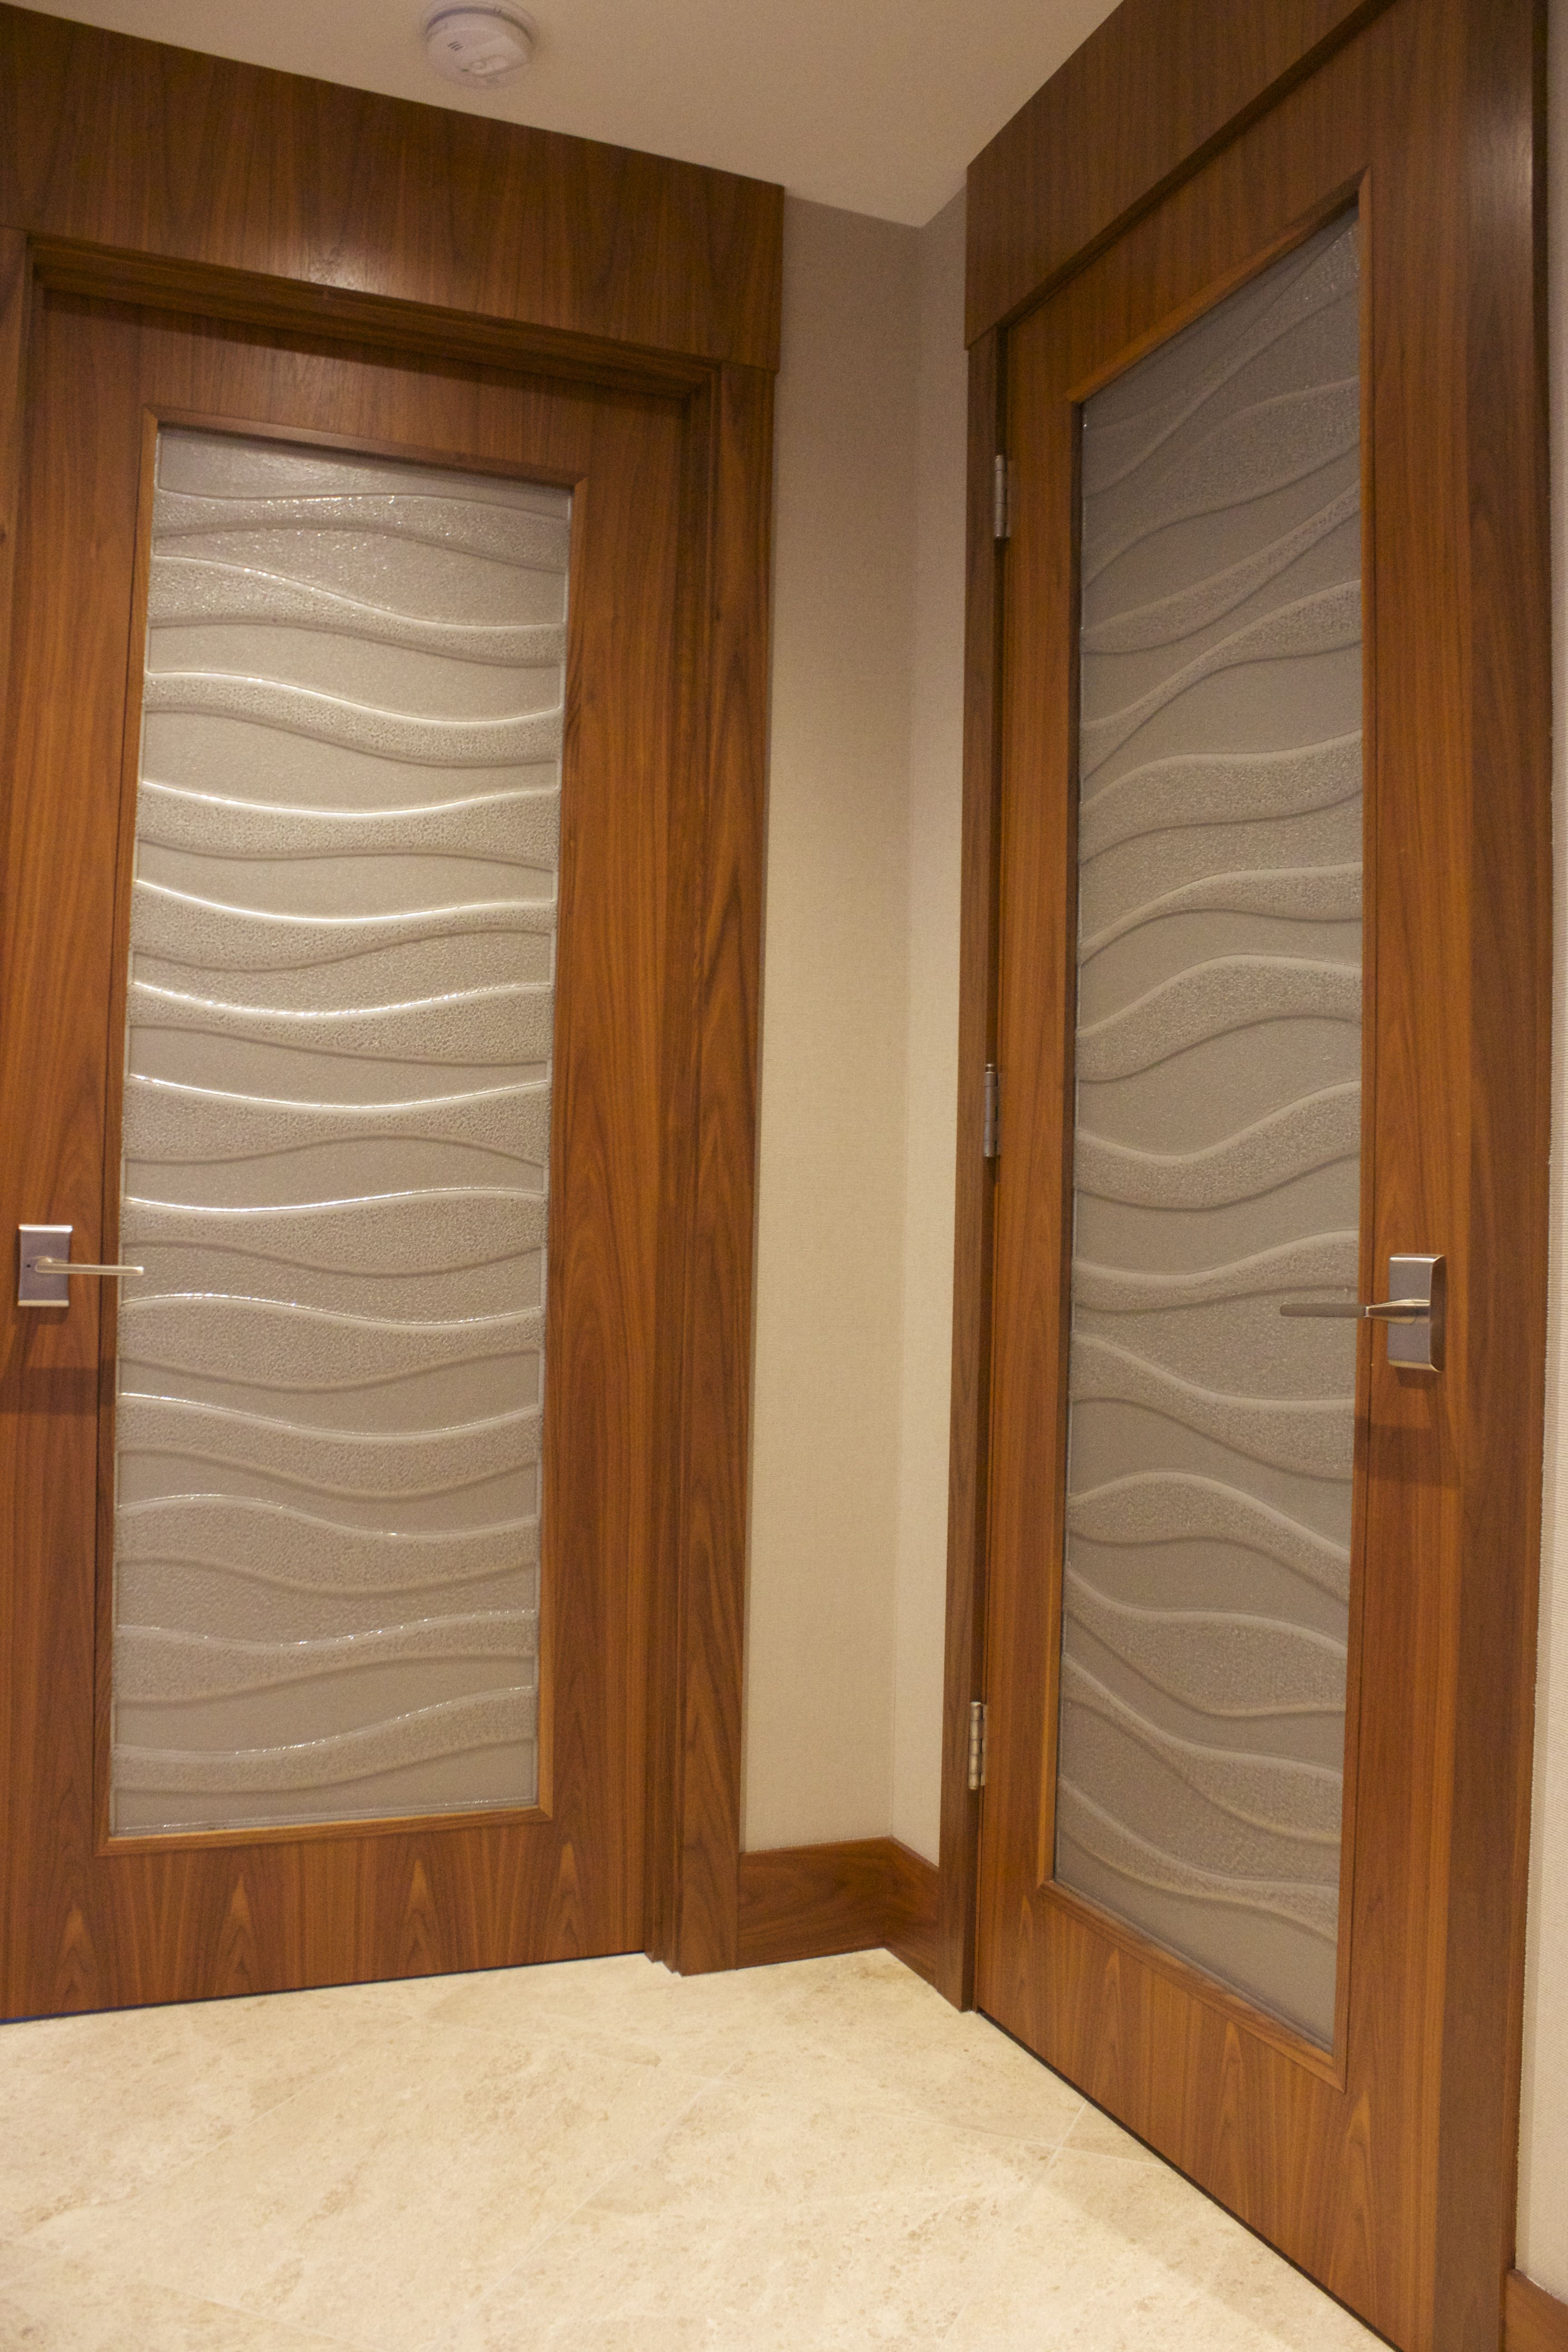 Cast Gl Doors Great For Adding Privacy Like A Typical